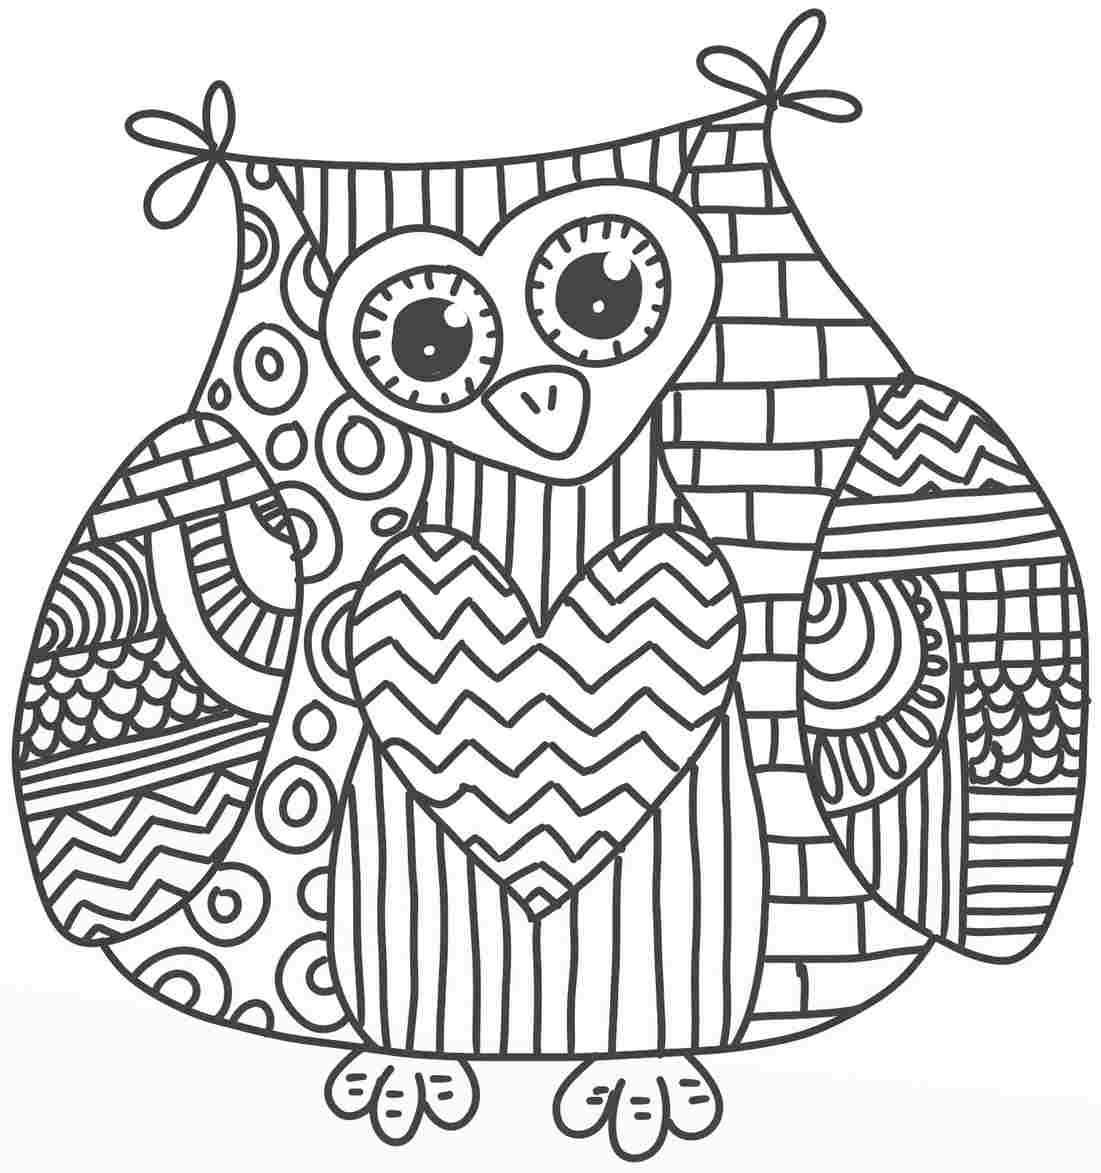 Coloring Pages for Dementia Patients Download | Free ...